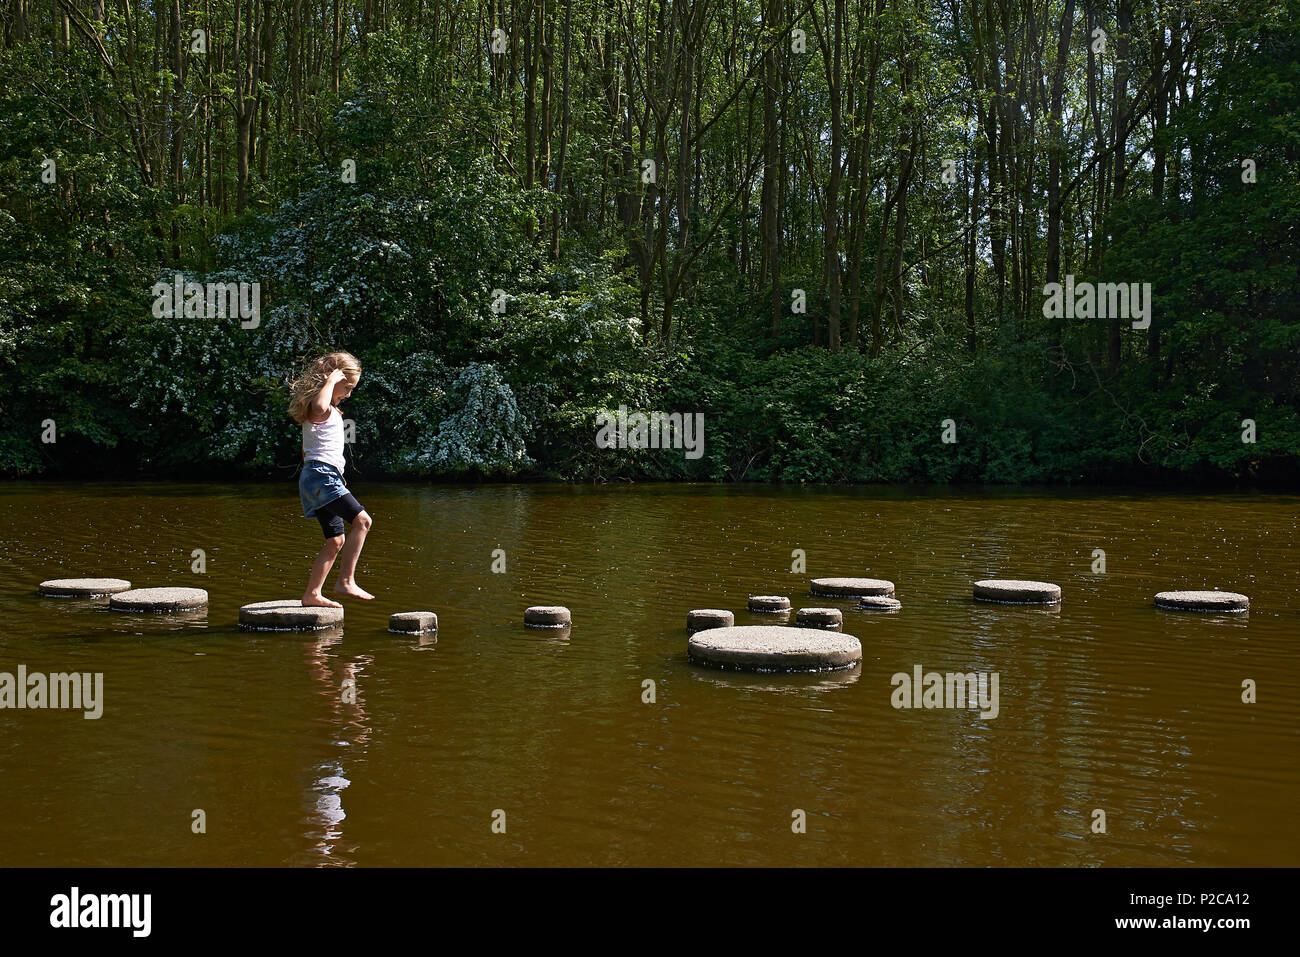 Young preteen girl walking across a stone path in the middle of a river trying out this challenge to find her path across without falling in the water Stock Photo